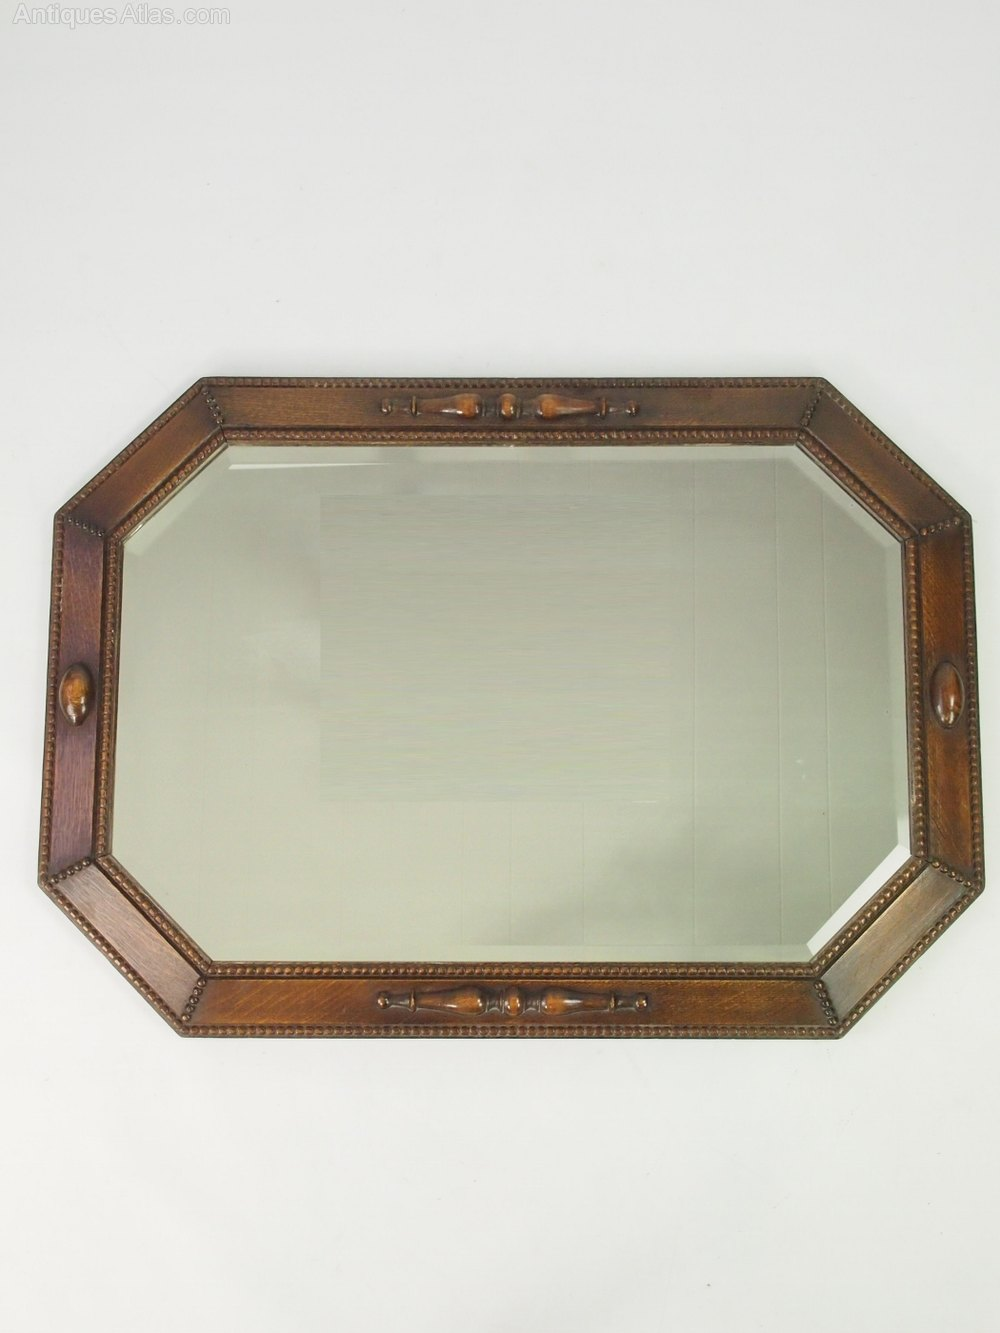 Antiques atlas large vintage oak framed mirror or overmantle for Big framed mirror